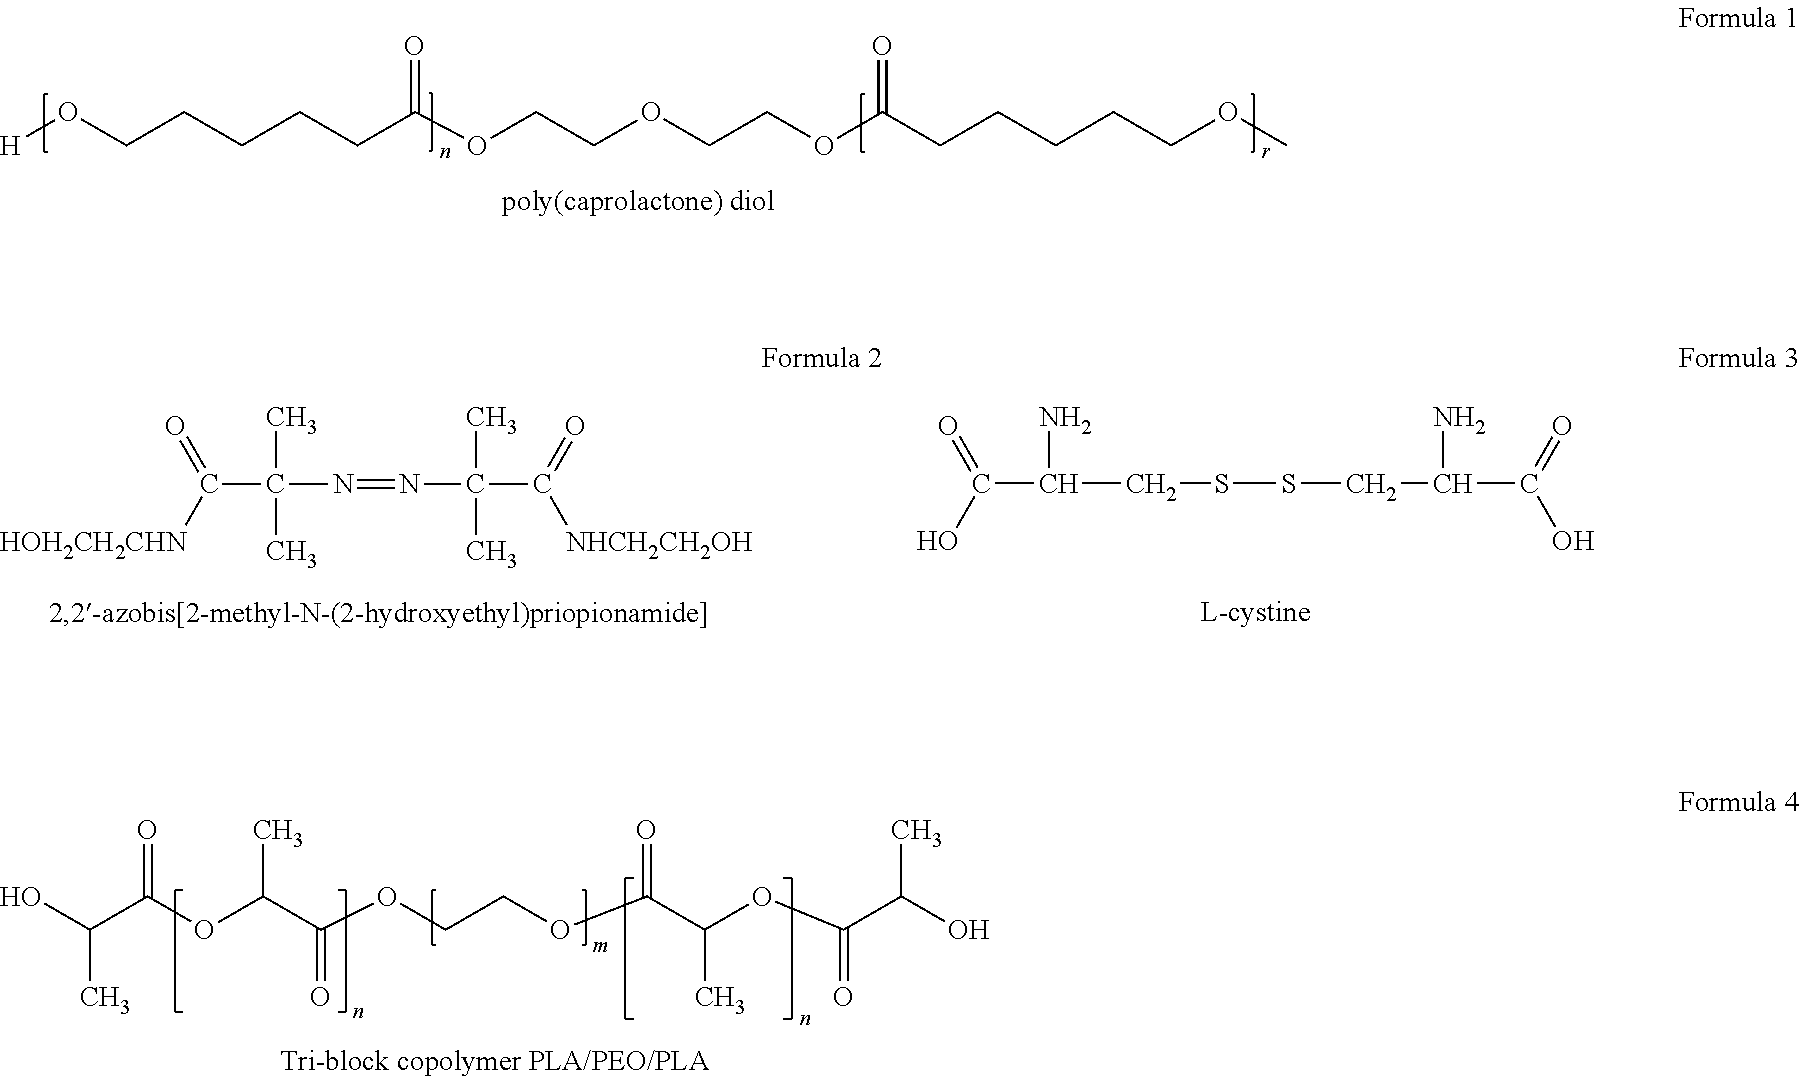 polymer degradation As you know, pyrrolidone is a lactam (ie a cyclic amide) the hcl, which forms upon thermal degradation of vinyl chloride repeating units, will react with the lactam causing acidic hydrolysis .